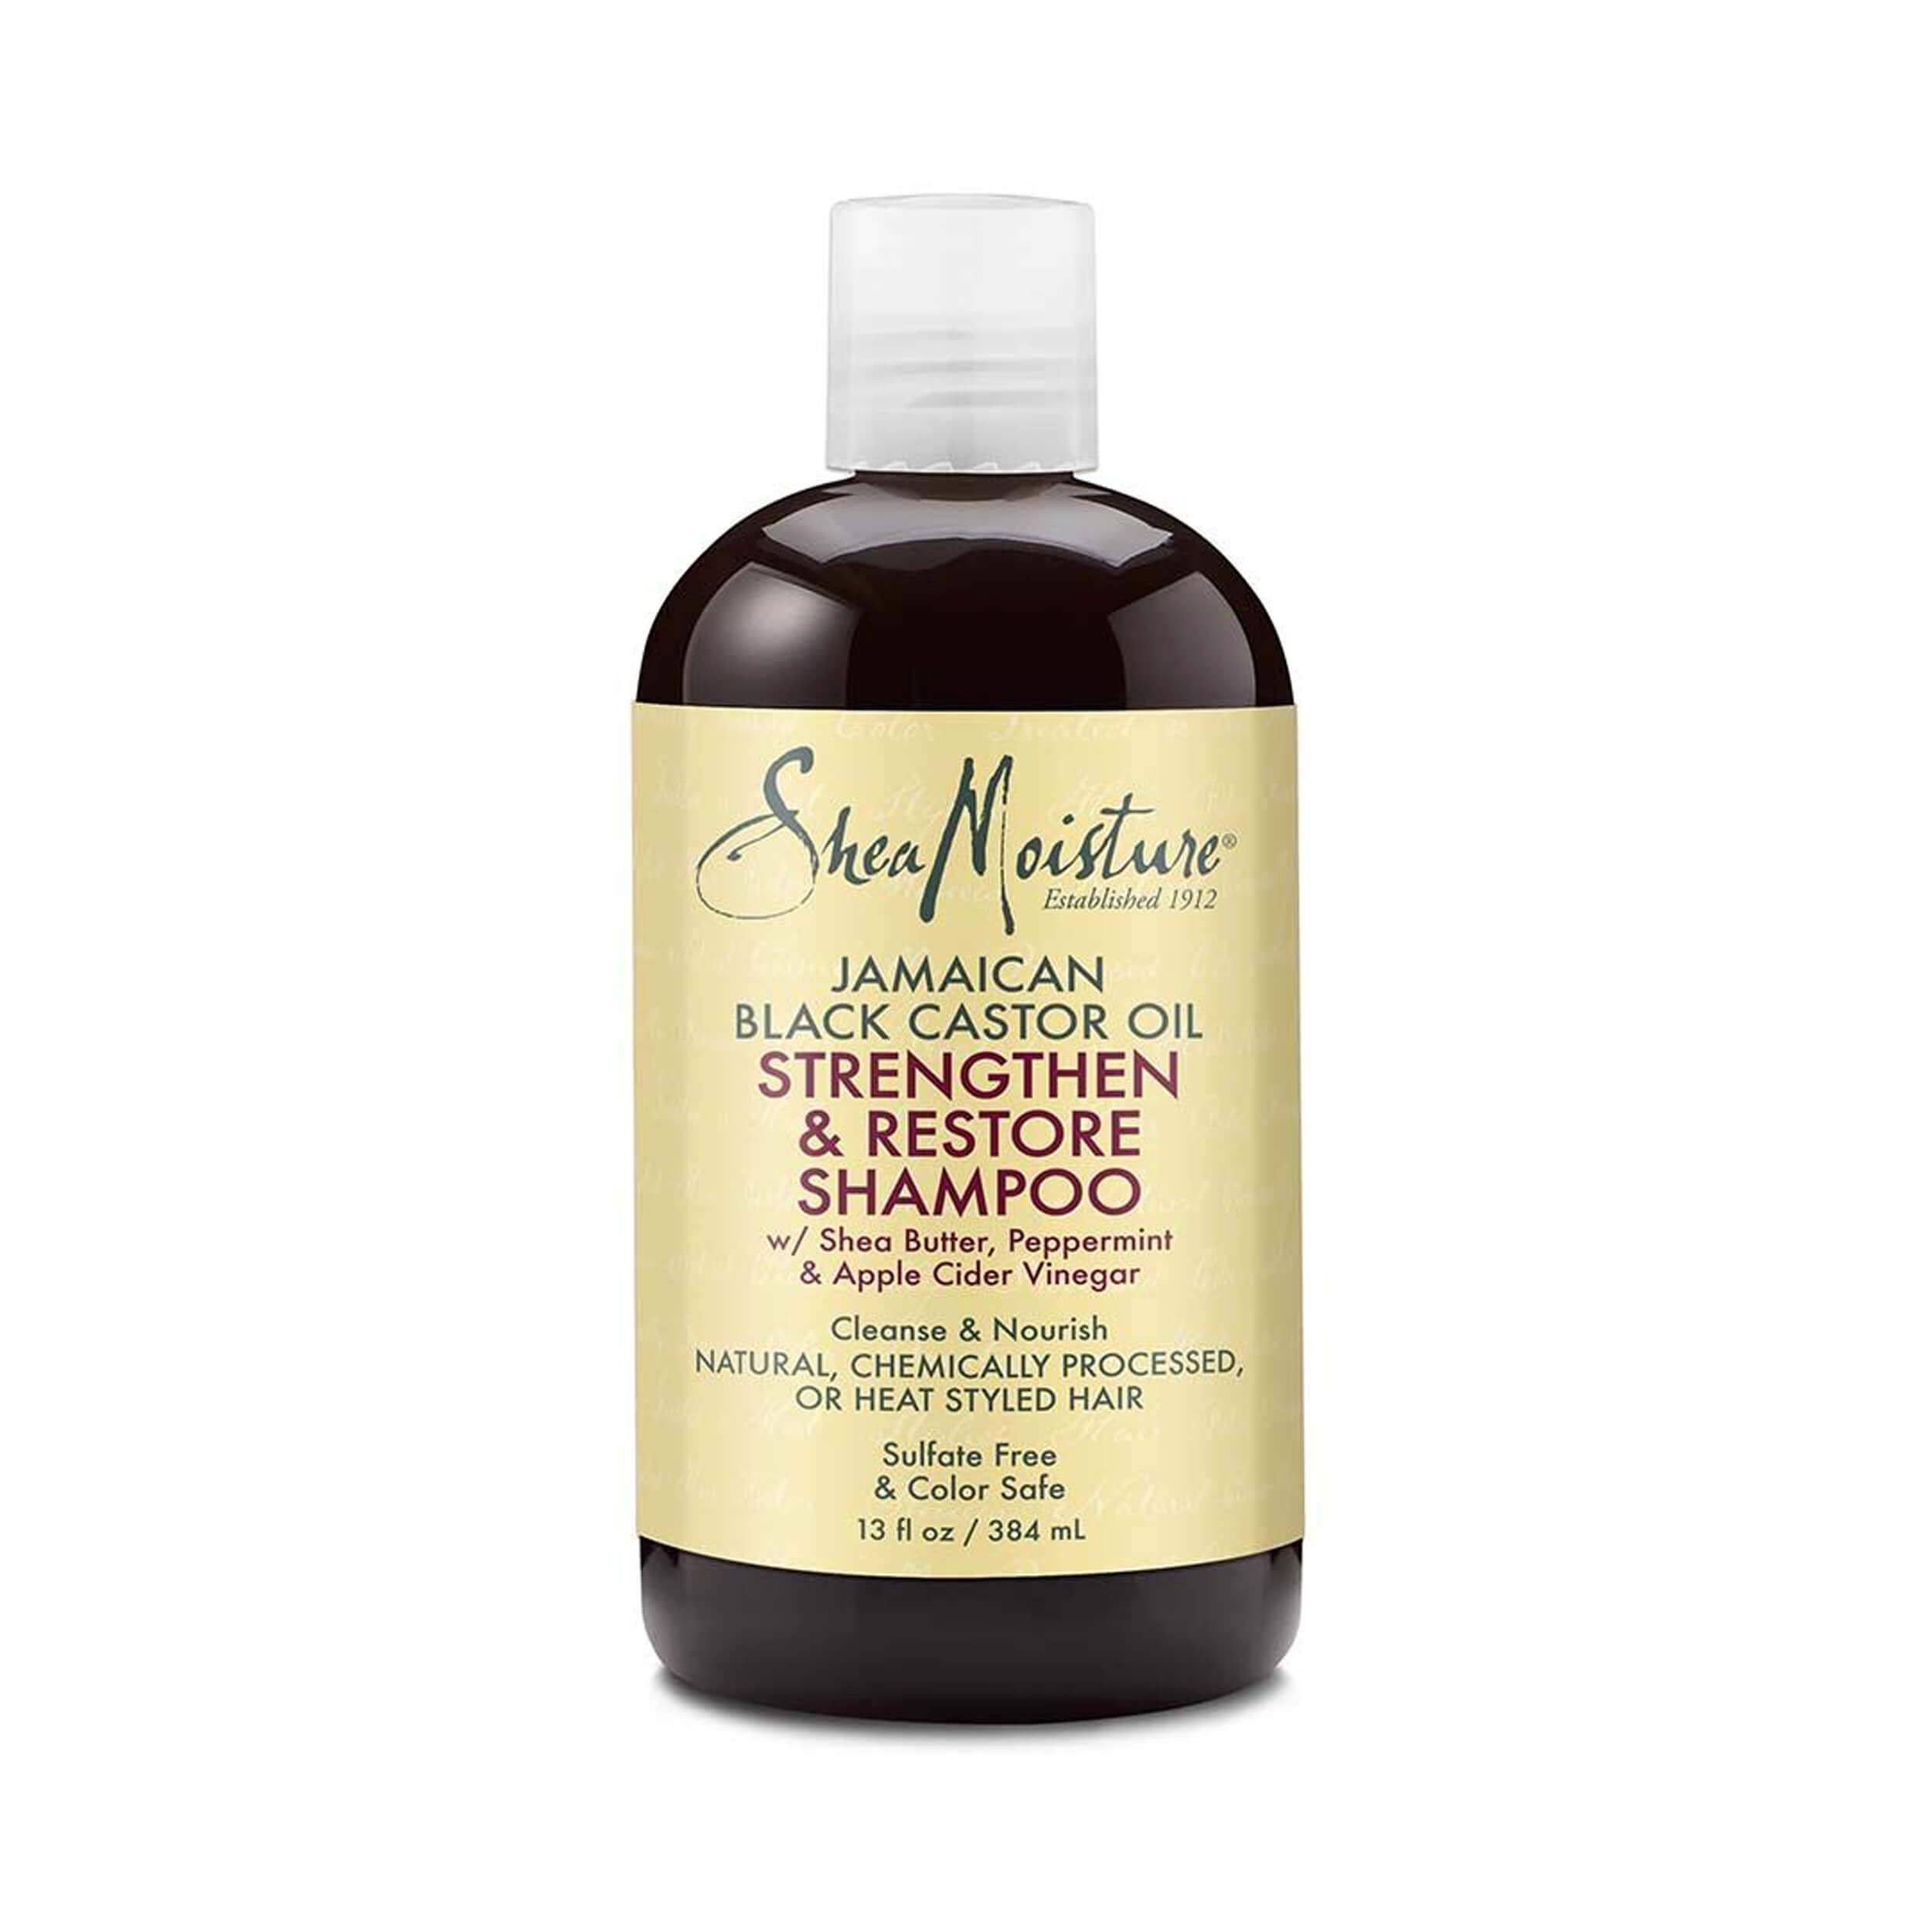 Shea Moisture Jamaican Black Castor Oil Strengthen and Shampoo - 13oz